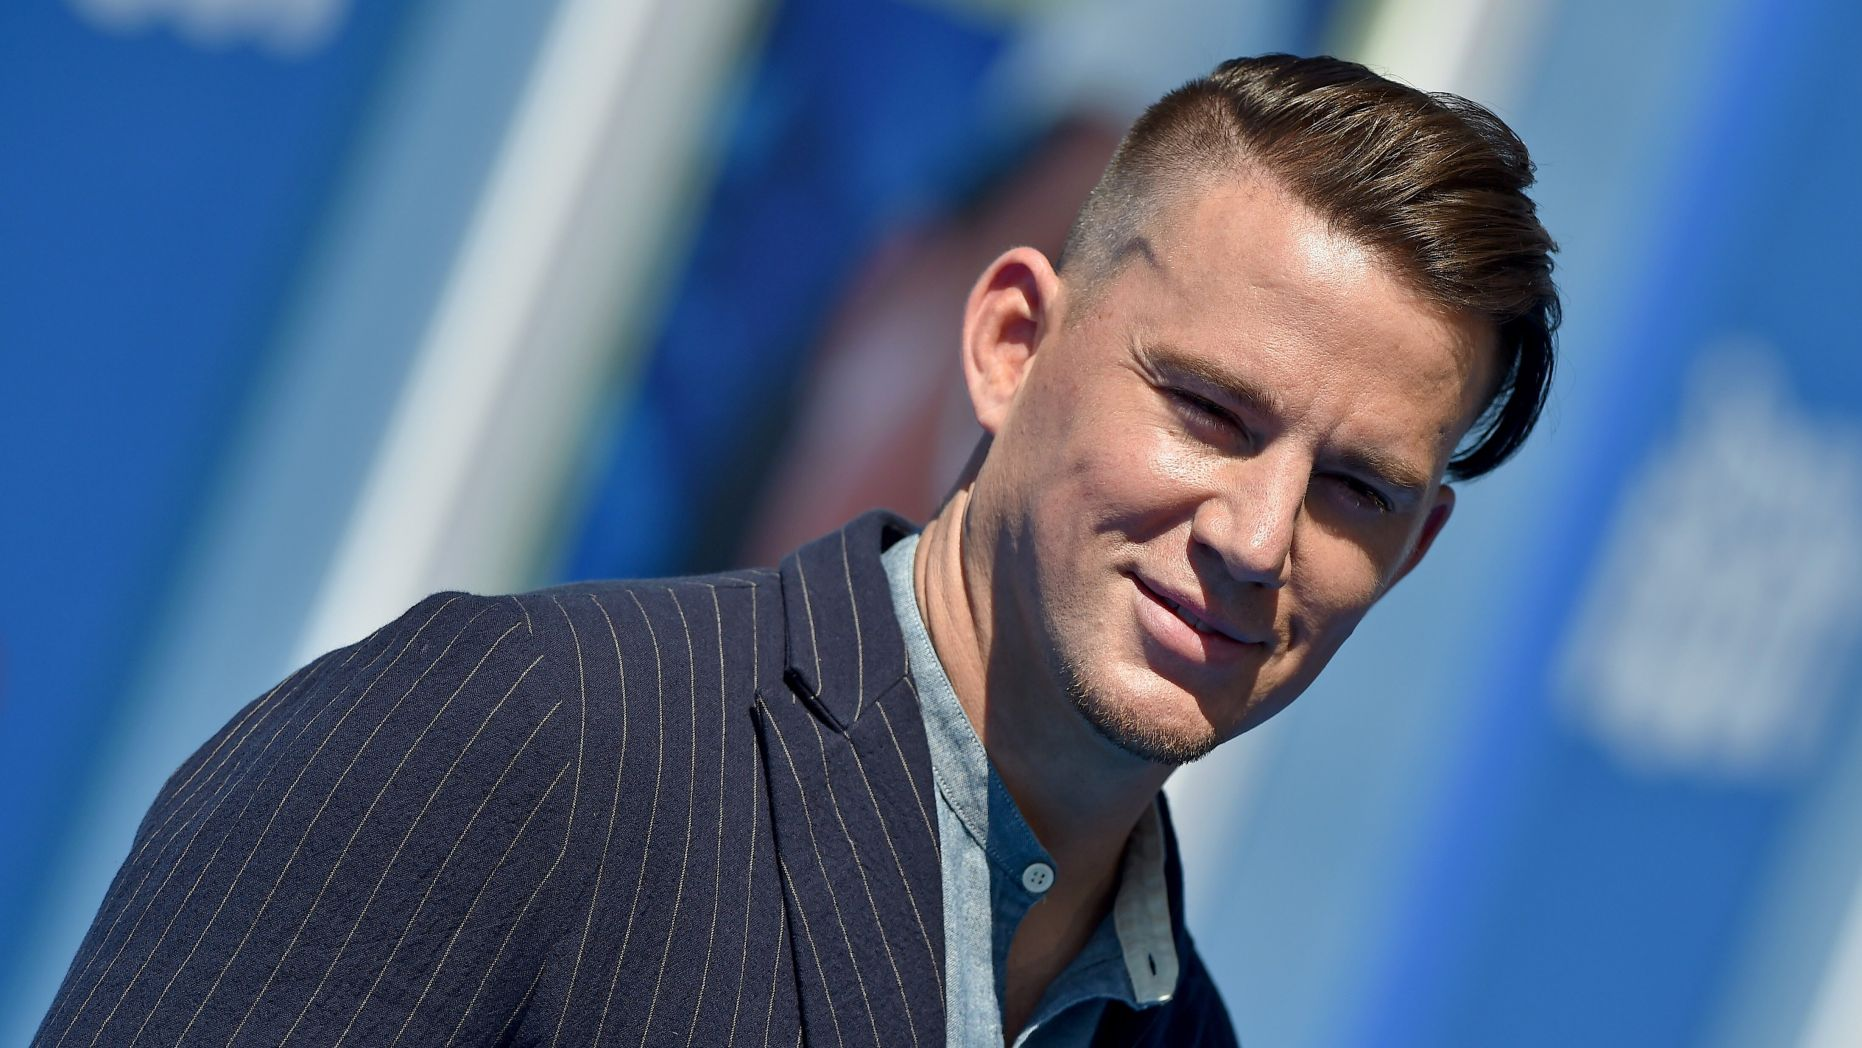 Actor Channing Tatum takes up art